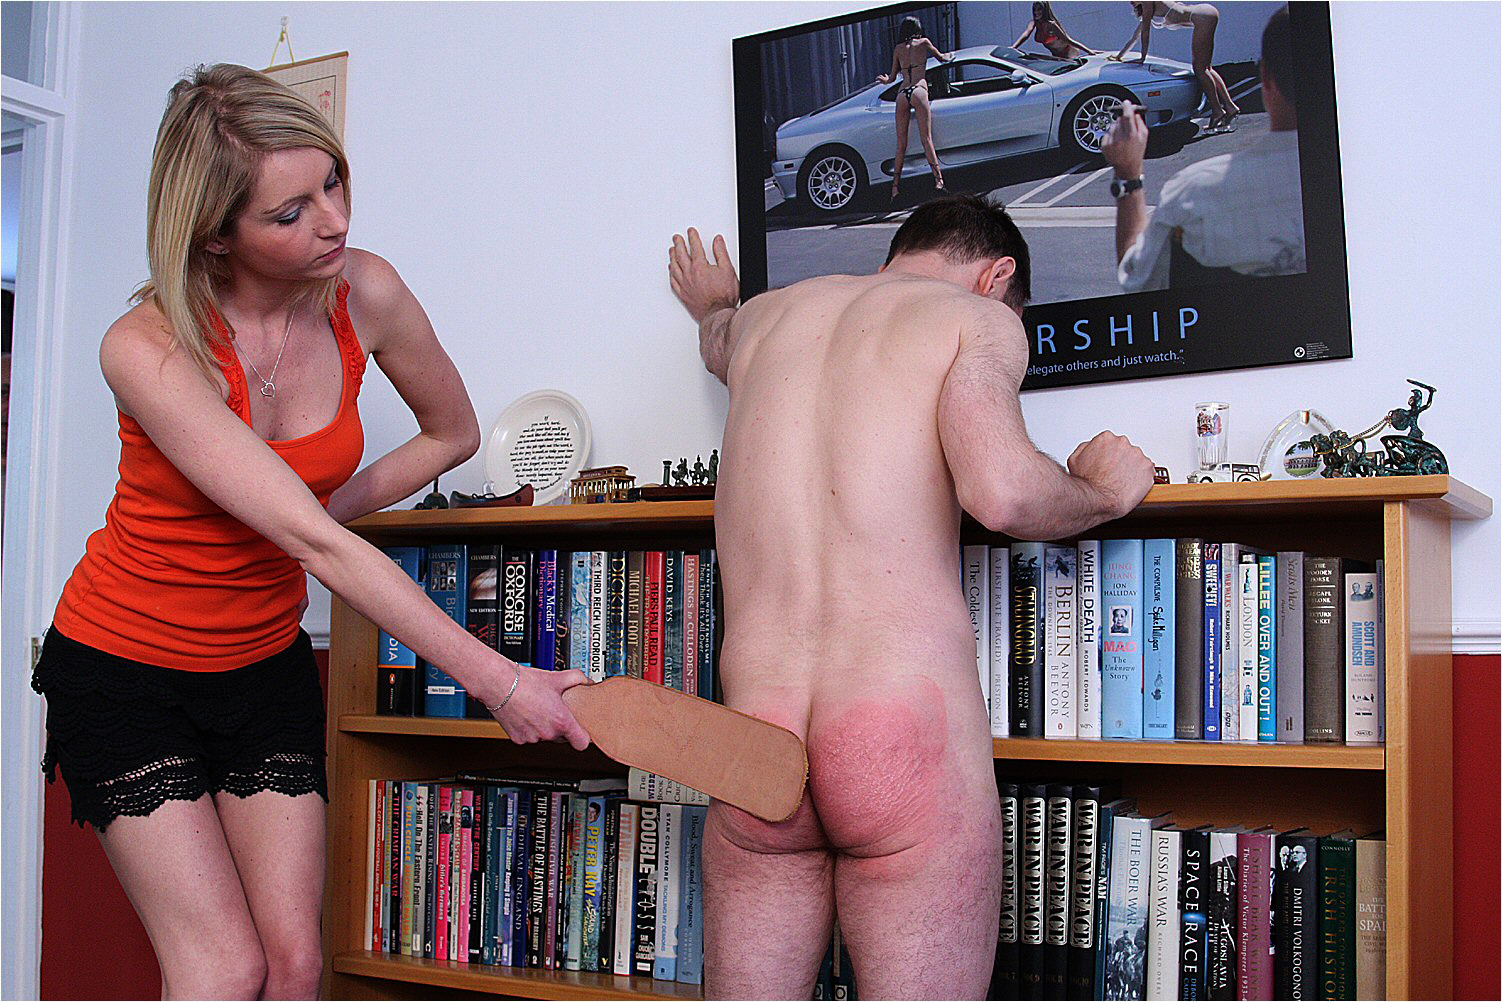 stuffing-his-face-115